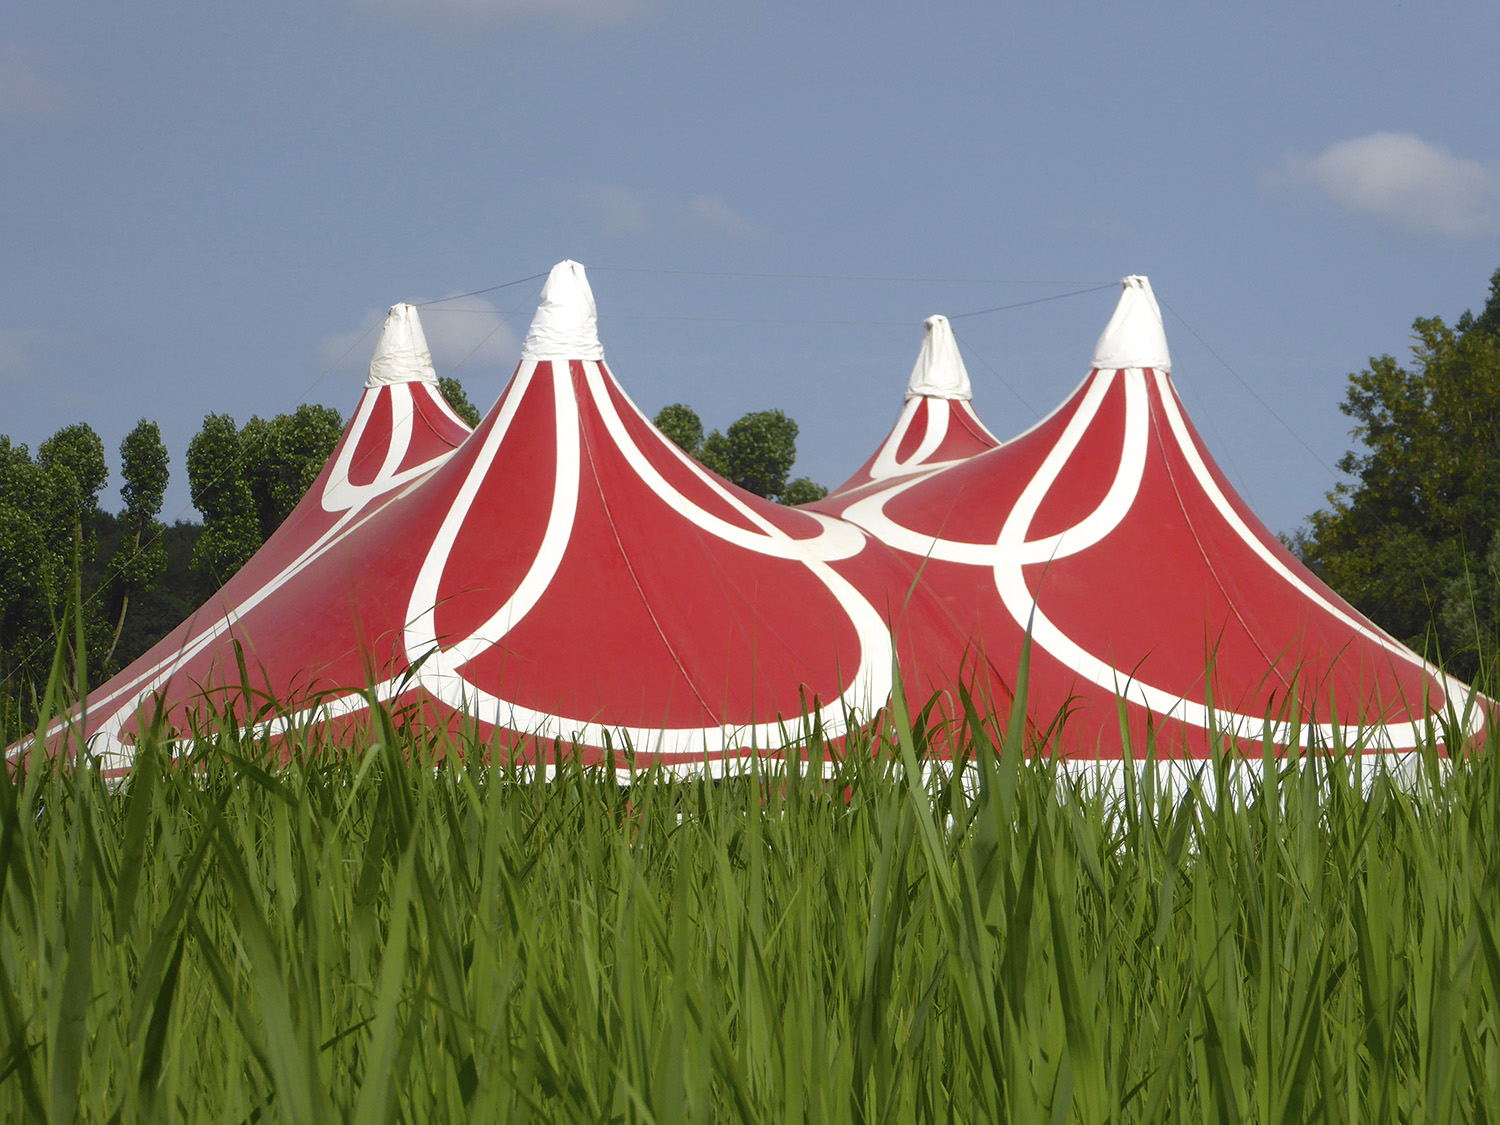 Festivals: surrealisme in het Amsterdamse Bos